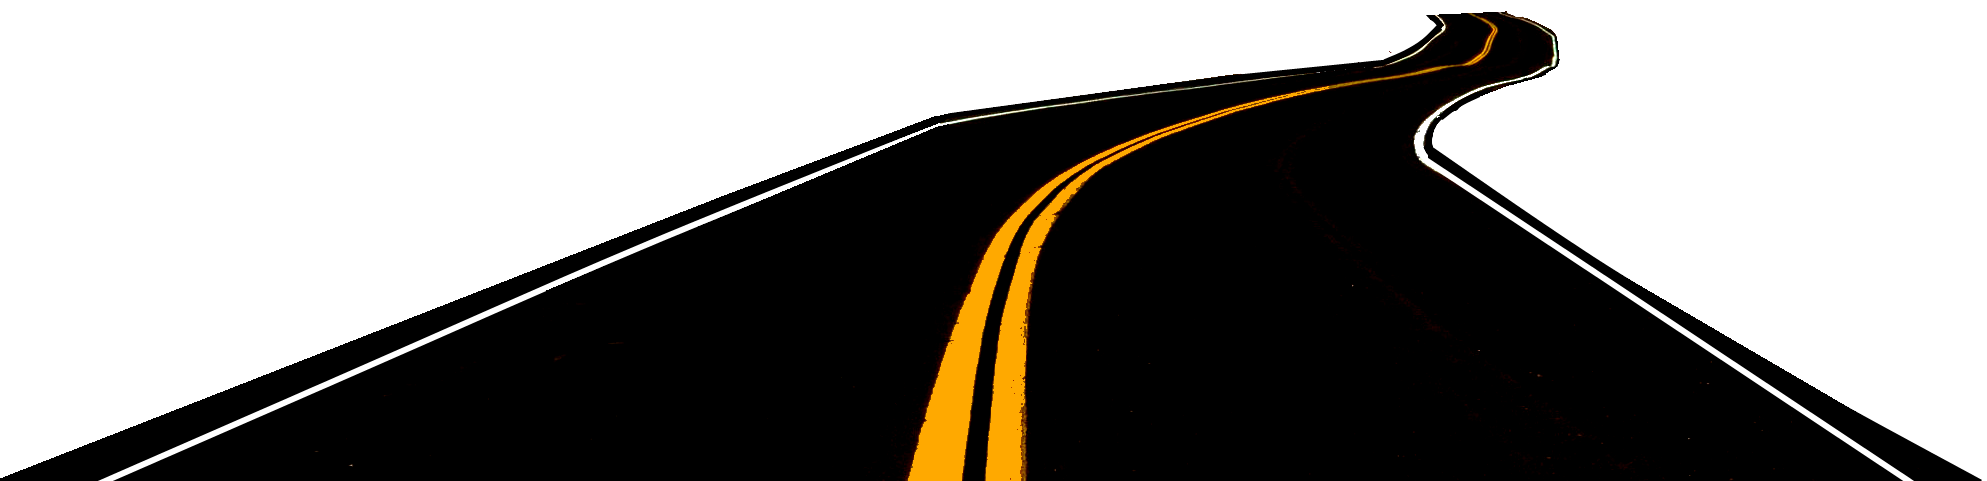 Straight road png. Images highway download